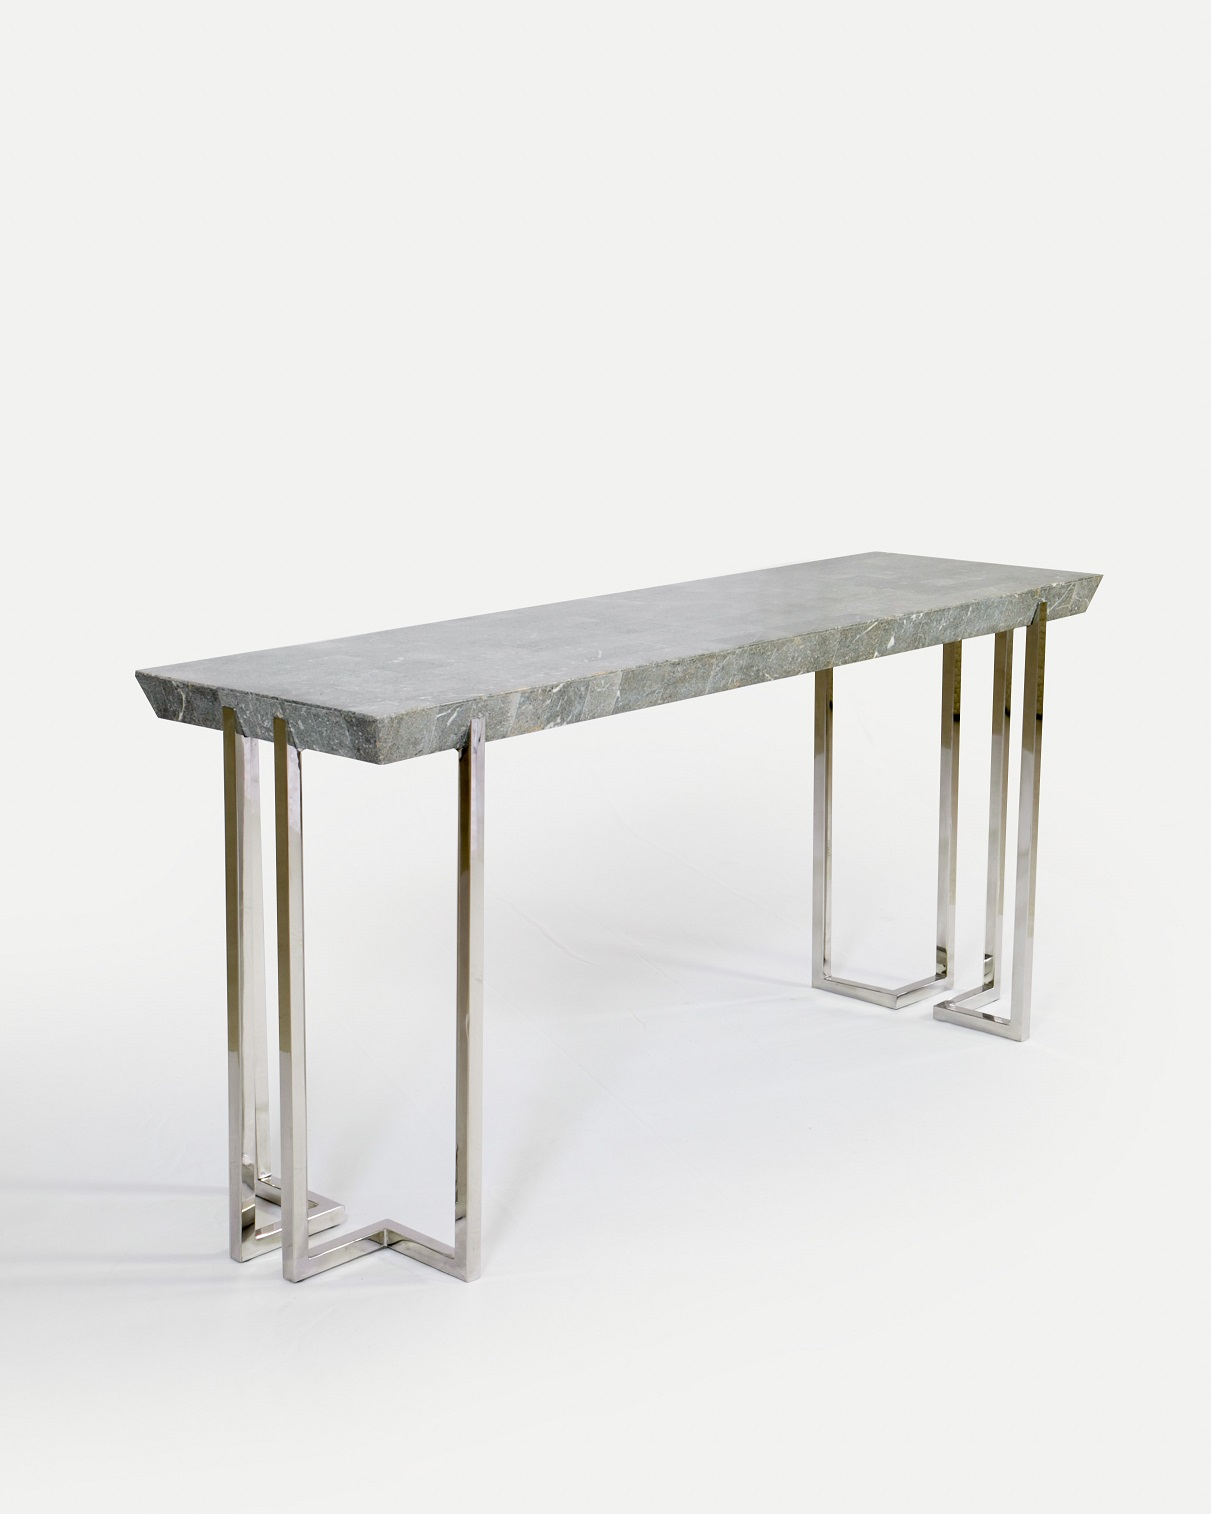 Co-Creative Studio, Detalia Aurora, Ercole Tables, Gray Stone Lamination, Stainless Steel A.jpg